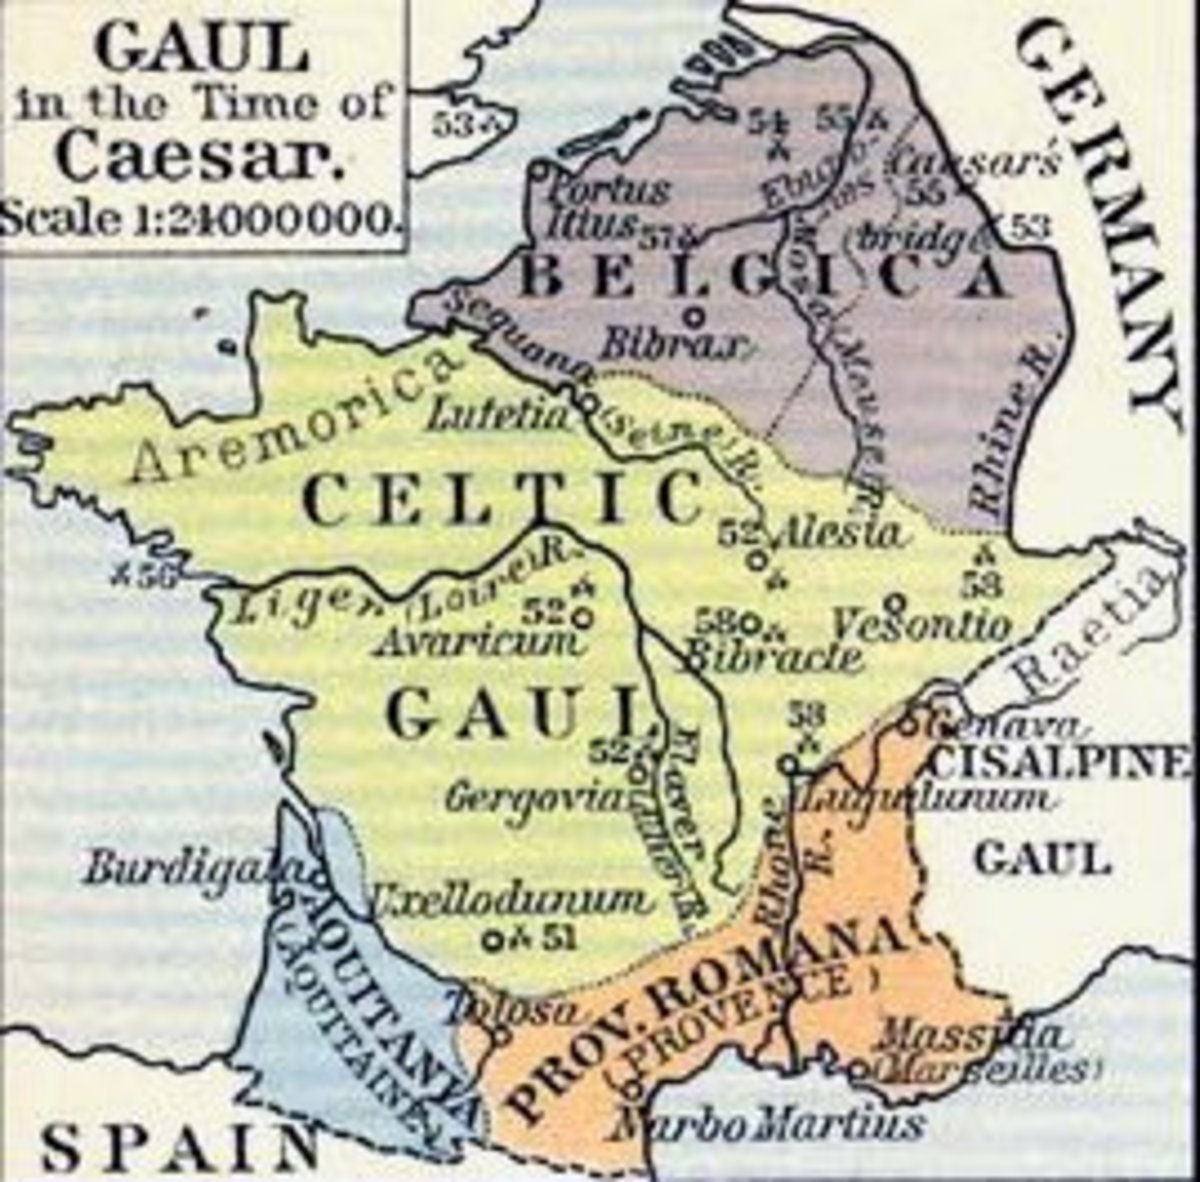 Modern day France is where Caesar conquered and named the area Gaul, but why did he not continue into Germany?